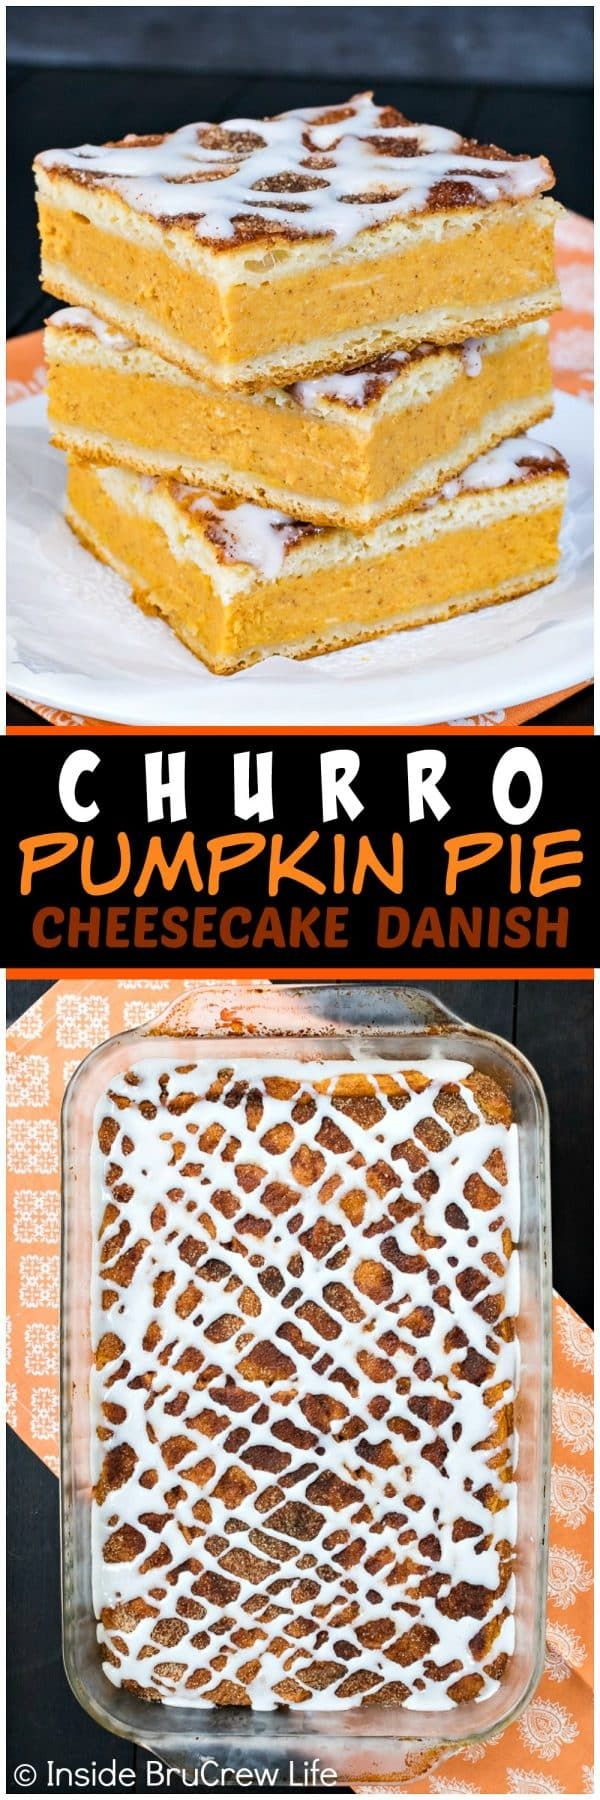 Churro Pumpkin Pie Cheesecake Danish - this easy pastry has a sweet pumpkin cheesecake filling and a cinnamon sugar coating. It's a great way to enjoy pie for breakfast this fall! #pumpkin #cheesecake